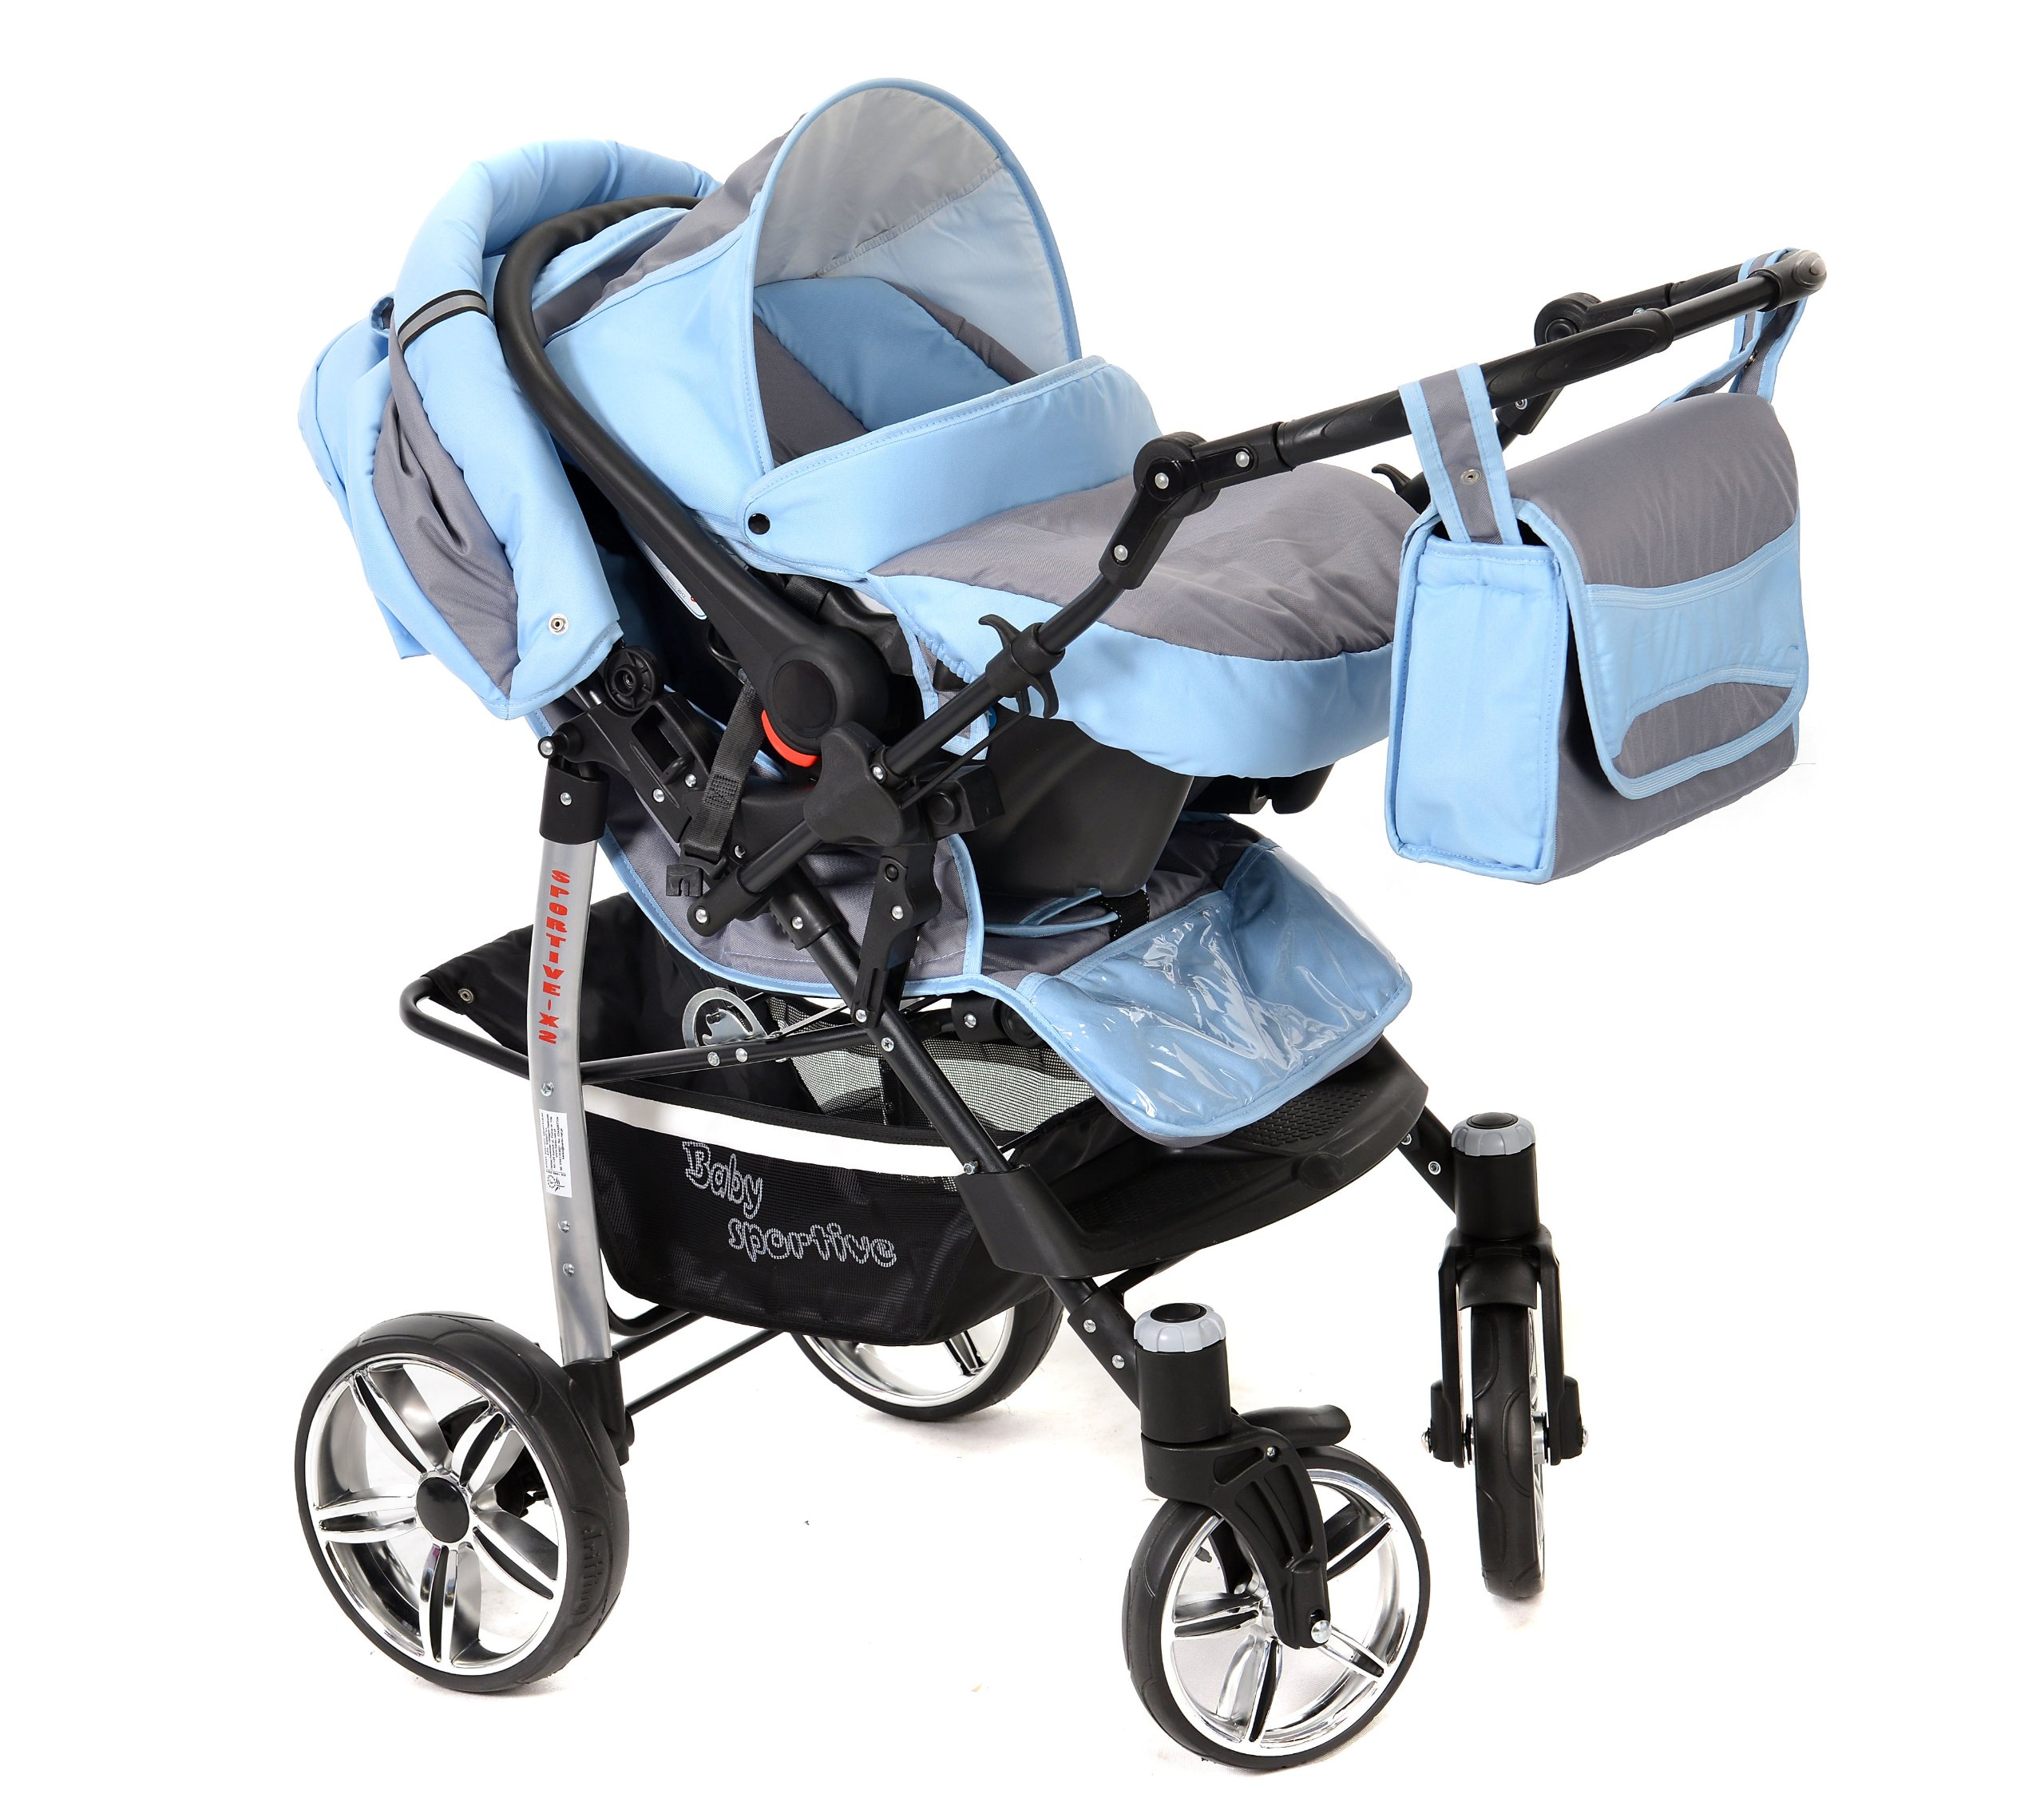 Sportive X2, 3-in-1 Travel System incl. Baby Pram with Swivel Wheels, Car Seat, Pushchair & Accessories (3-in-1 Travel System, Pale Grey & Blue)  3 in 1 Travel System All in One Set - Pram, Car Carrier Seat and Sport Buggy + Accessories: carrier bag, rain protection, mosquito net, changing mat, removable bottle holder and removable tray for your child's bits and pieces Suitable from birth, Easy Quick Folding System; Large storage basket; Turnable handle bar that allows to face or rear the drive direction; Quick release rear wheels for easy cleaning after muddy walks Front lockable 360o swivel wheels for manoeuvrability , Small sized when folded, fits into many small car trunks, Carry-cot with a removable hood, Reflective elements for better visibility 6